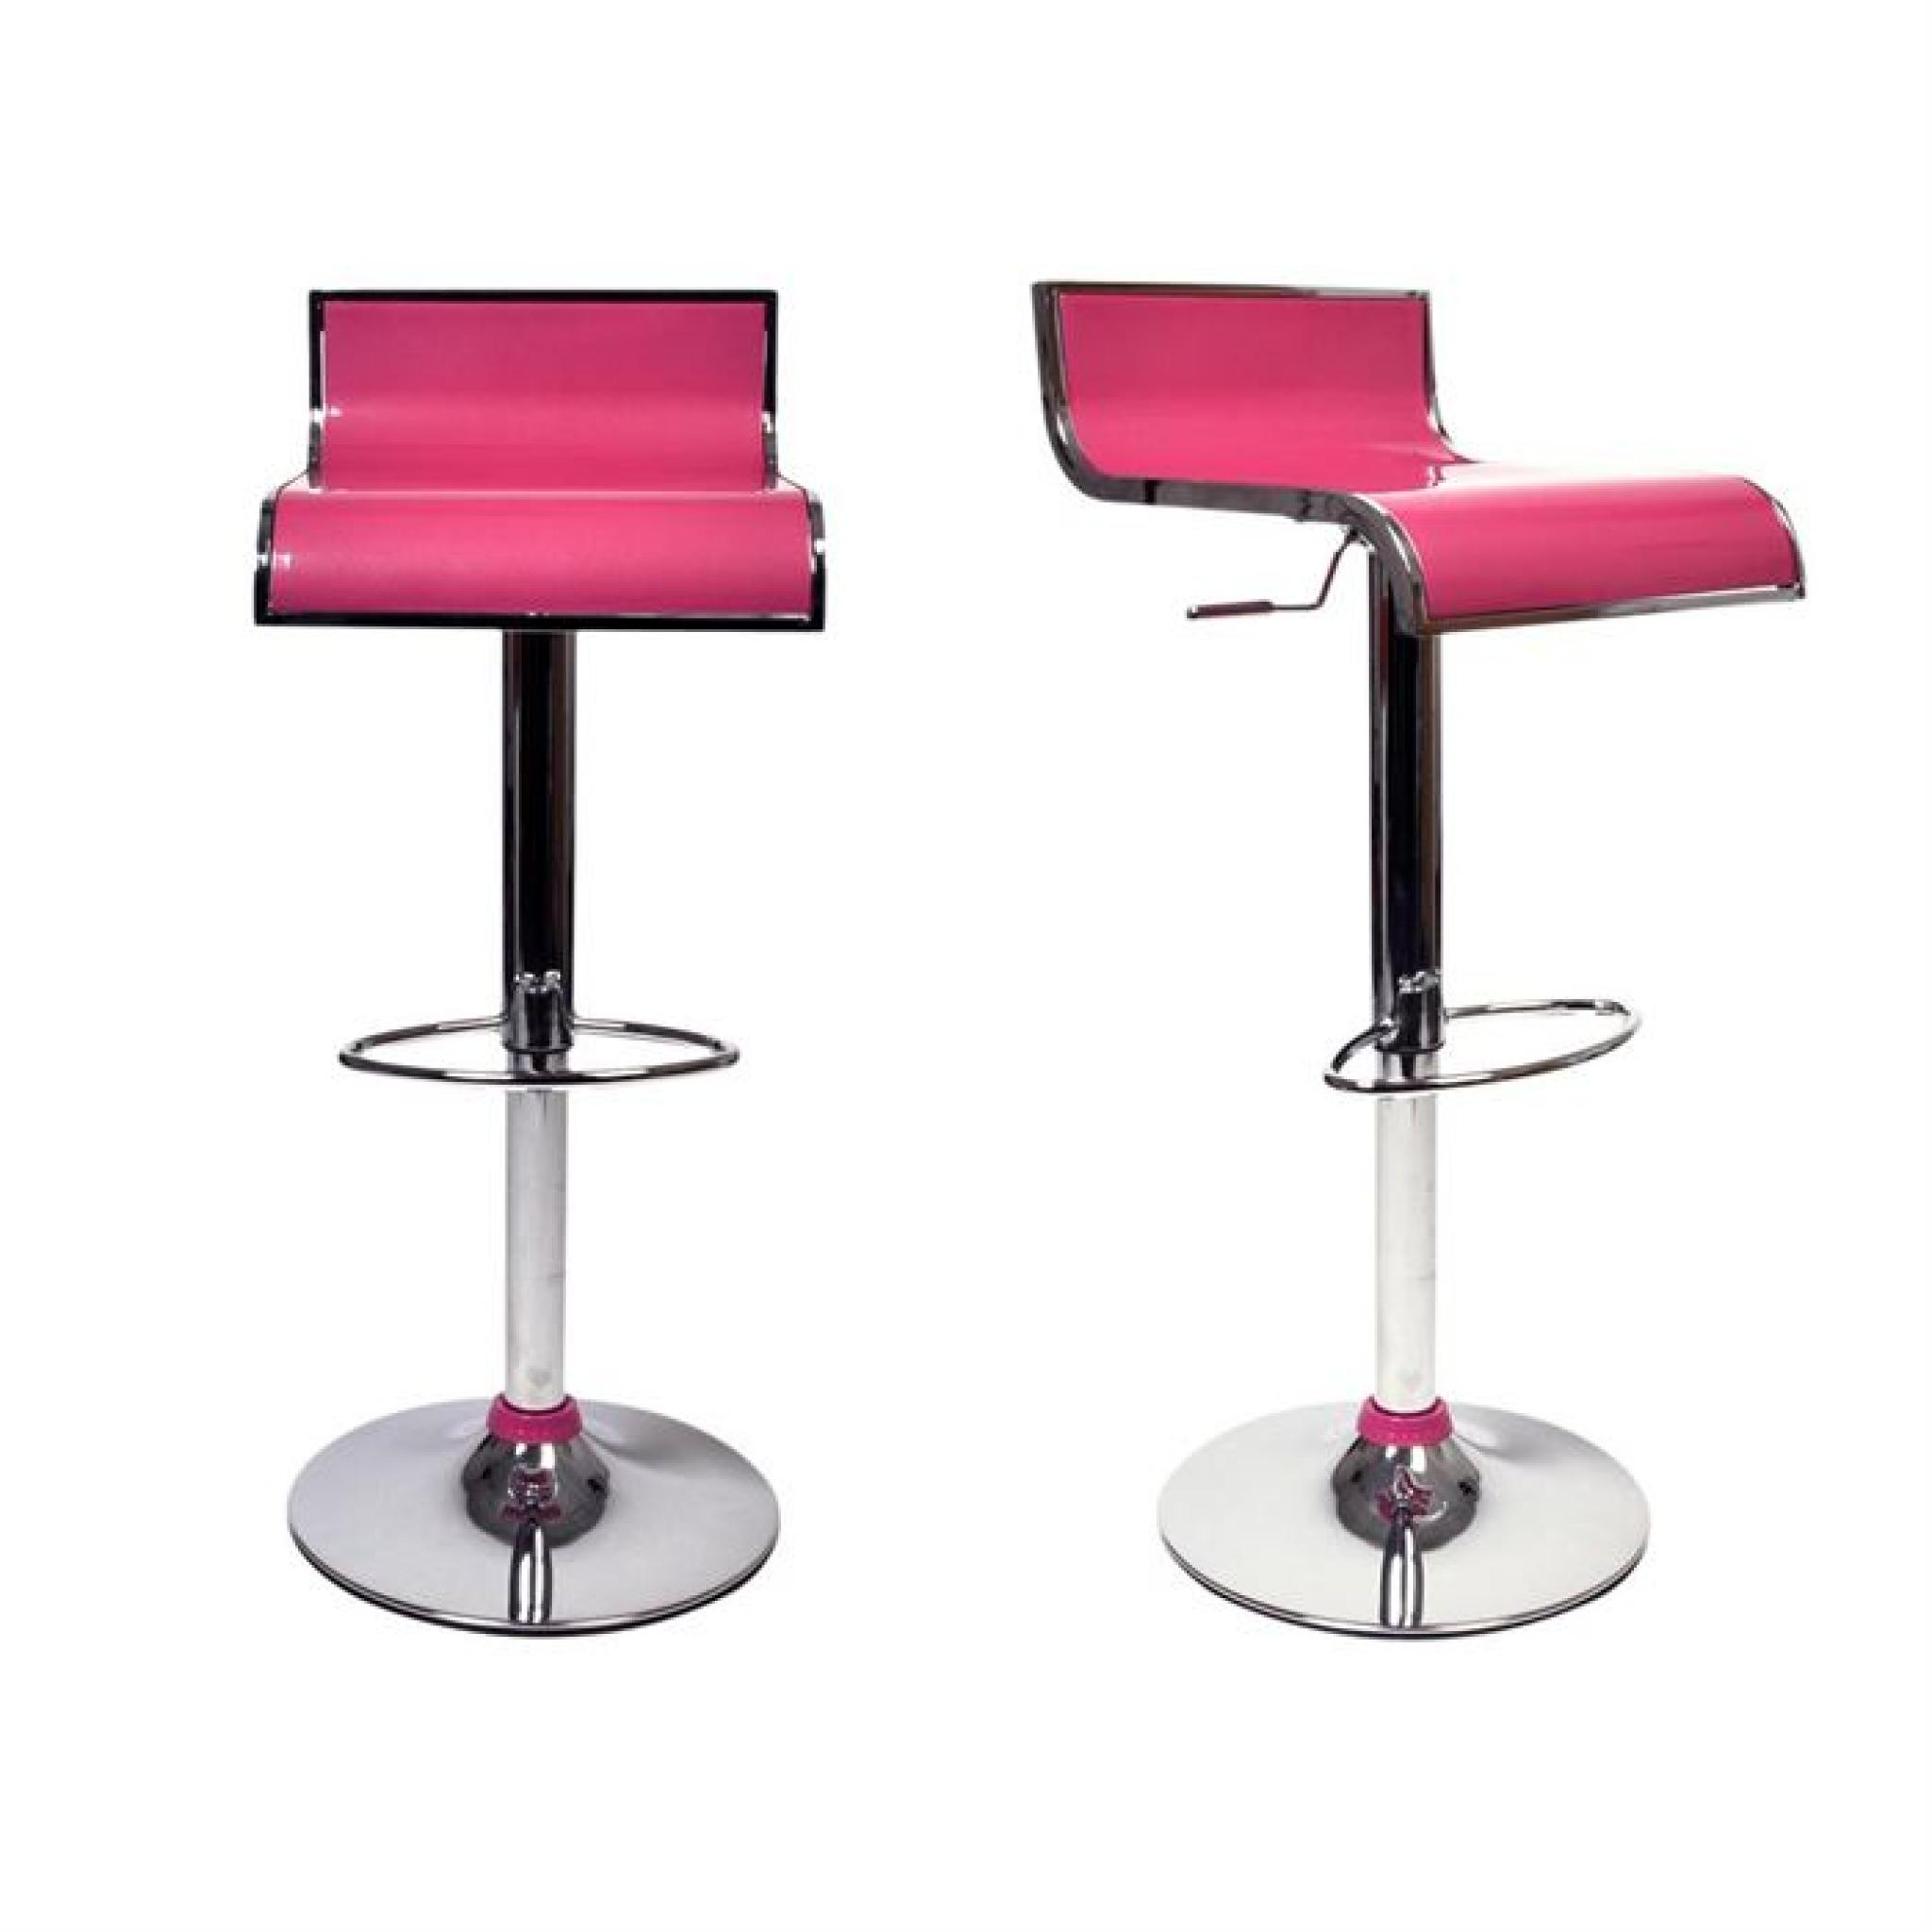 Tabourets de bar rose design waves lot de 2 achat - Tabouret de bar couleur ...